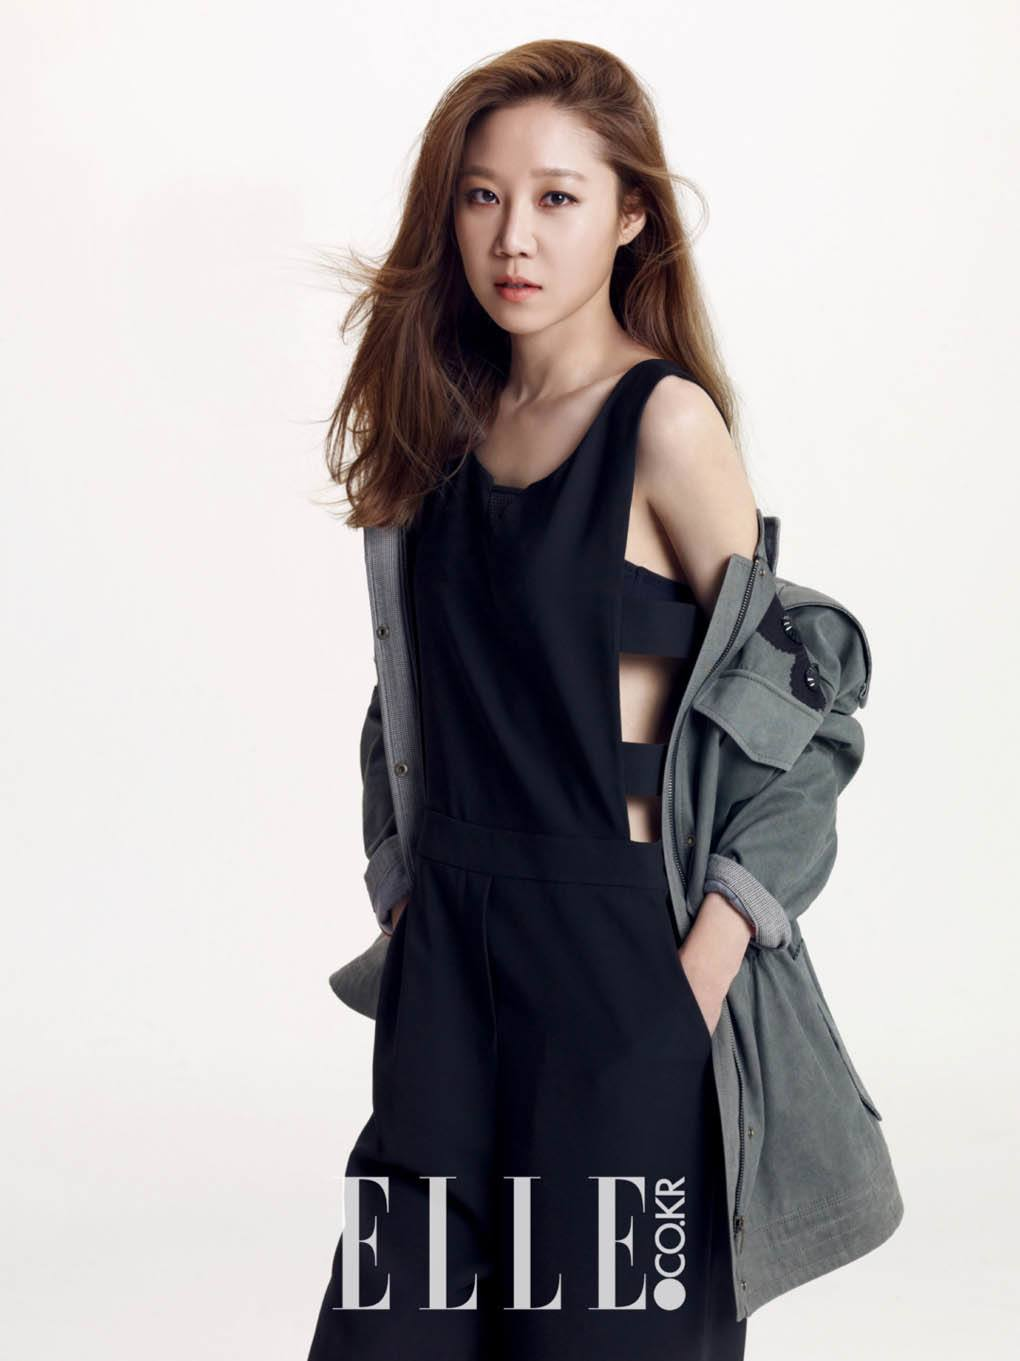 Gong Hyo Jin Displays Her Classy Fashion Style For Elle